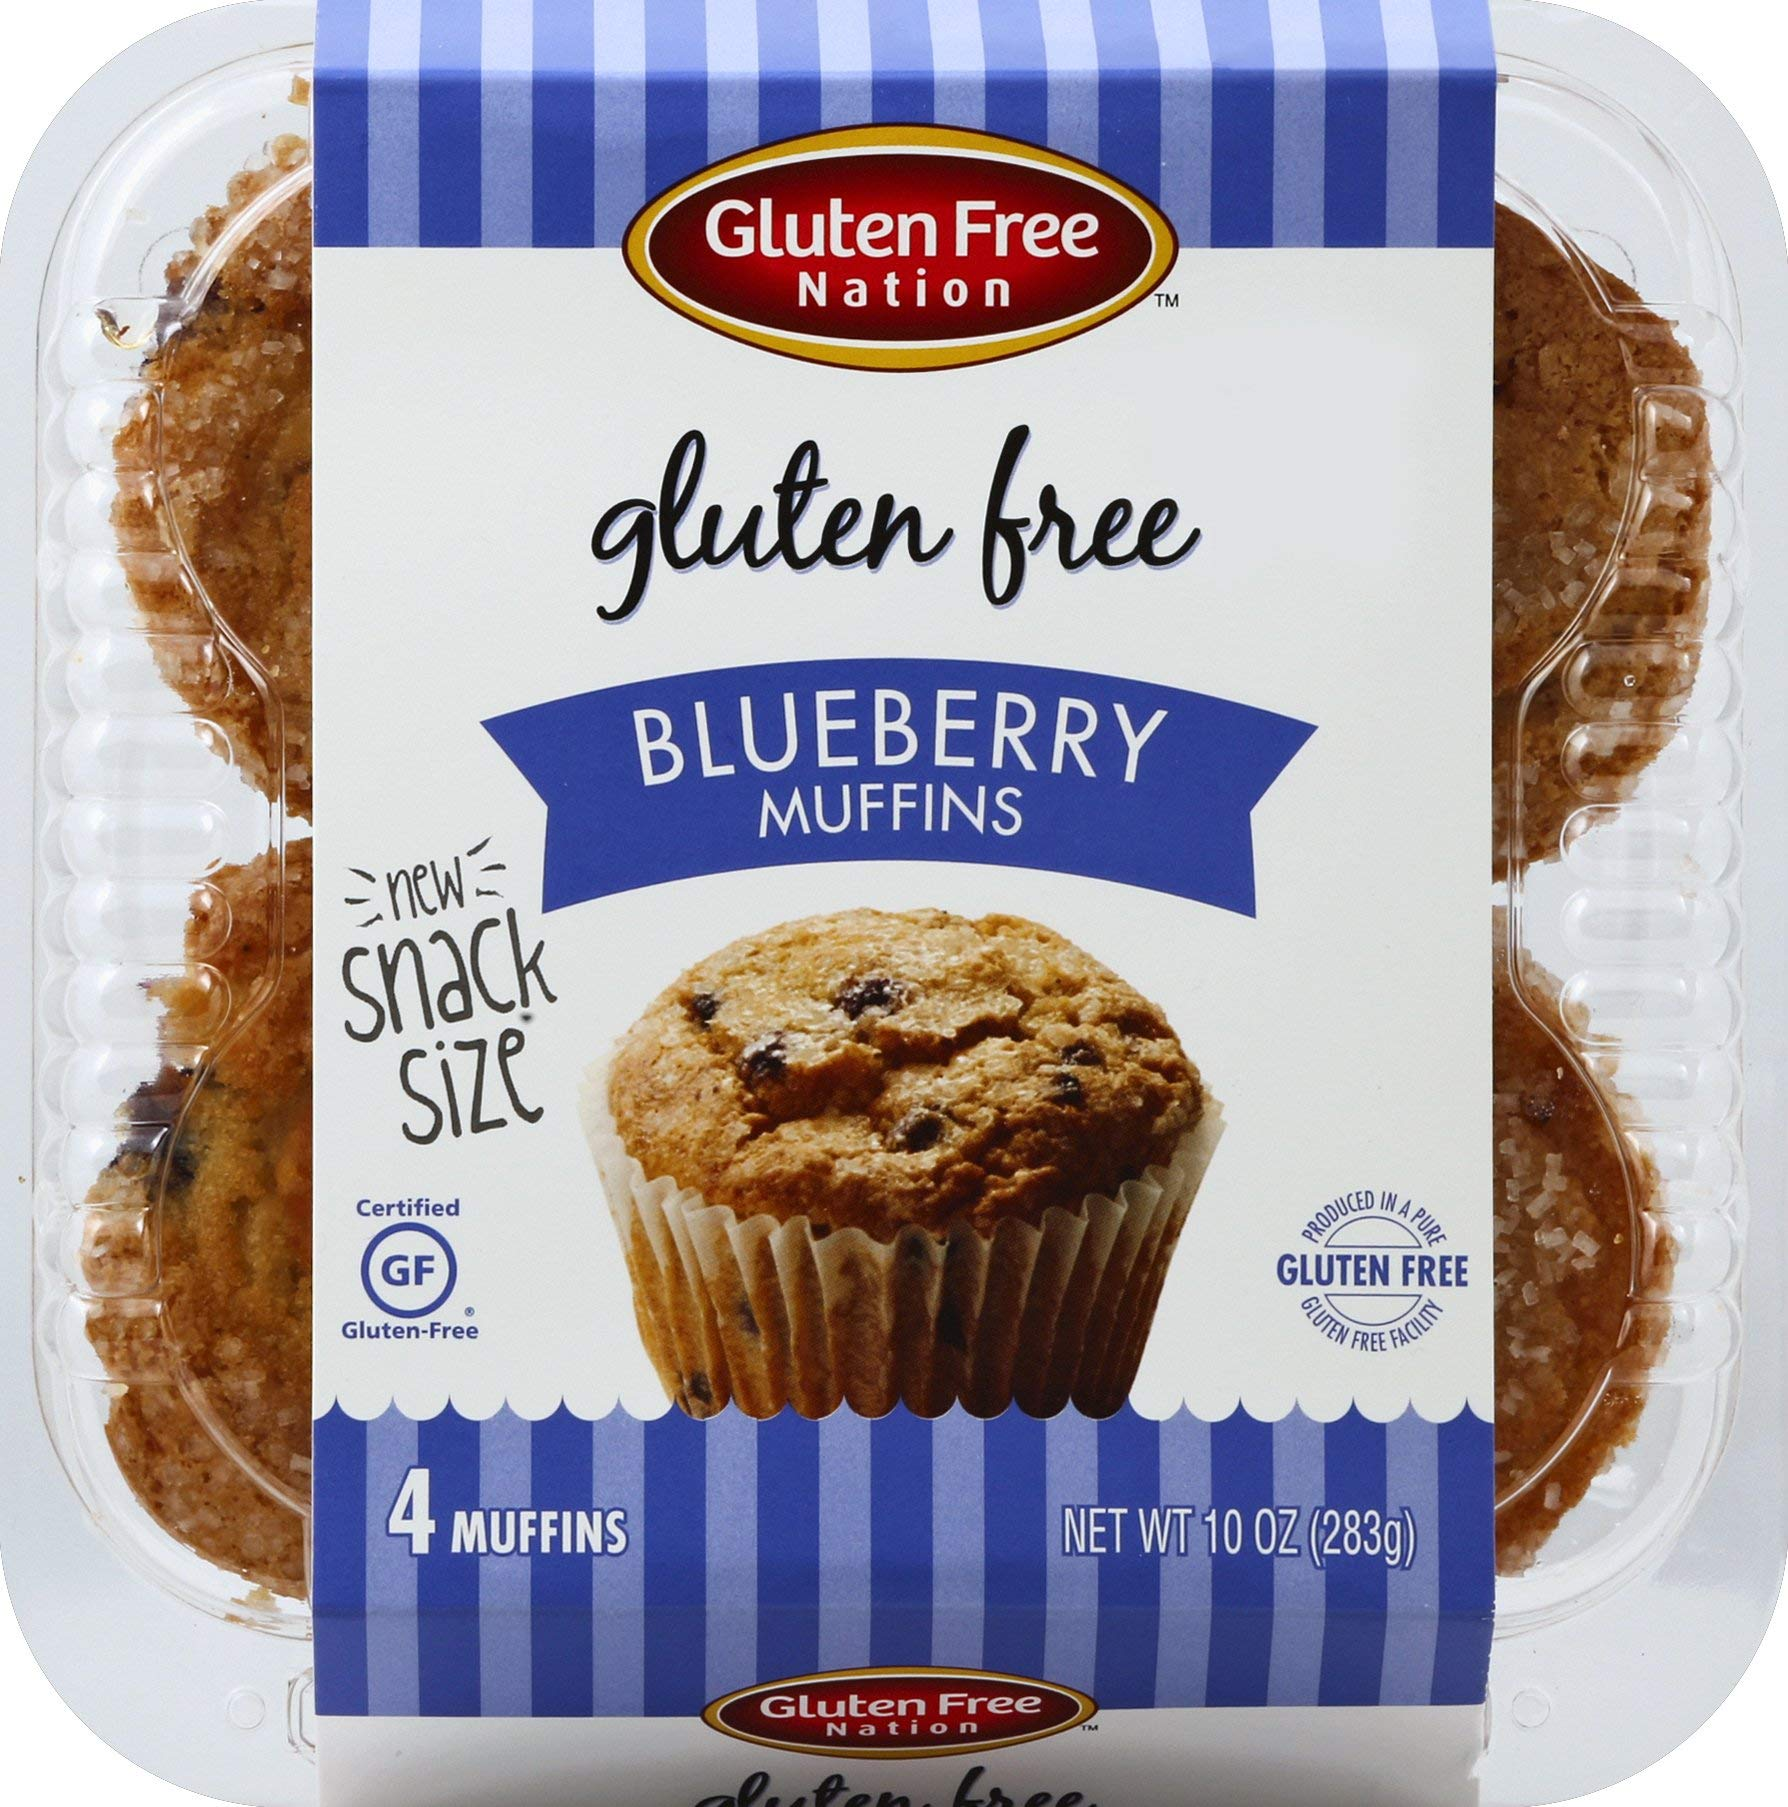 Gluten Free Blueberry Muffins 24-ct. (case of 24 Blueberry Muffins 2.5 oz.)